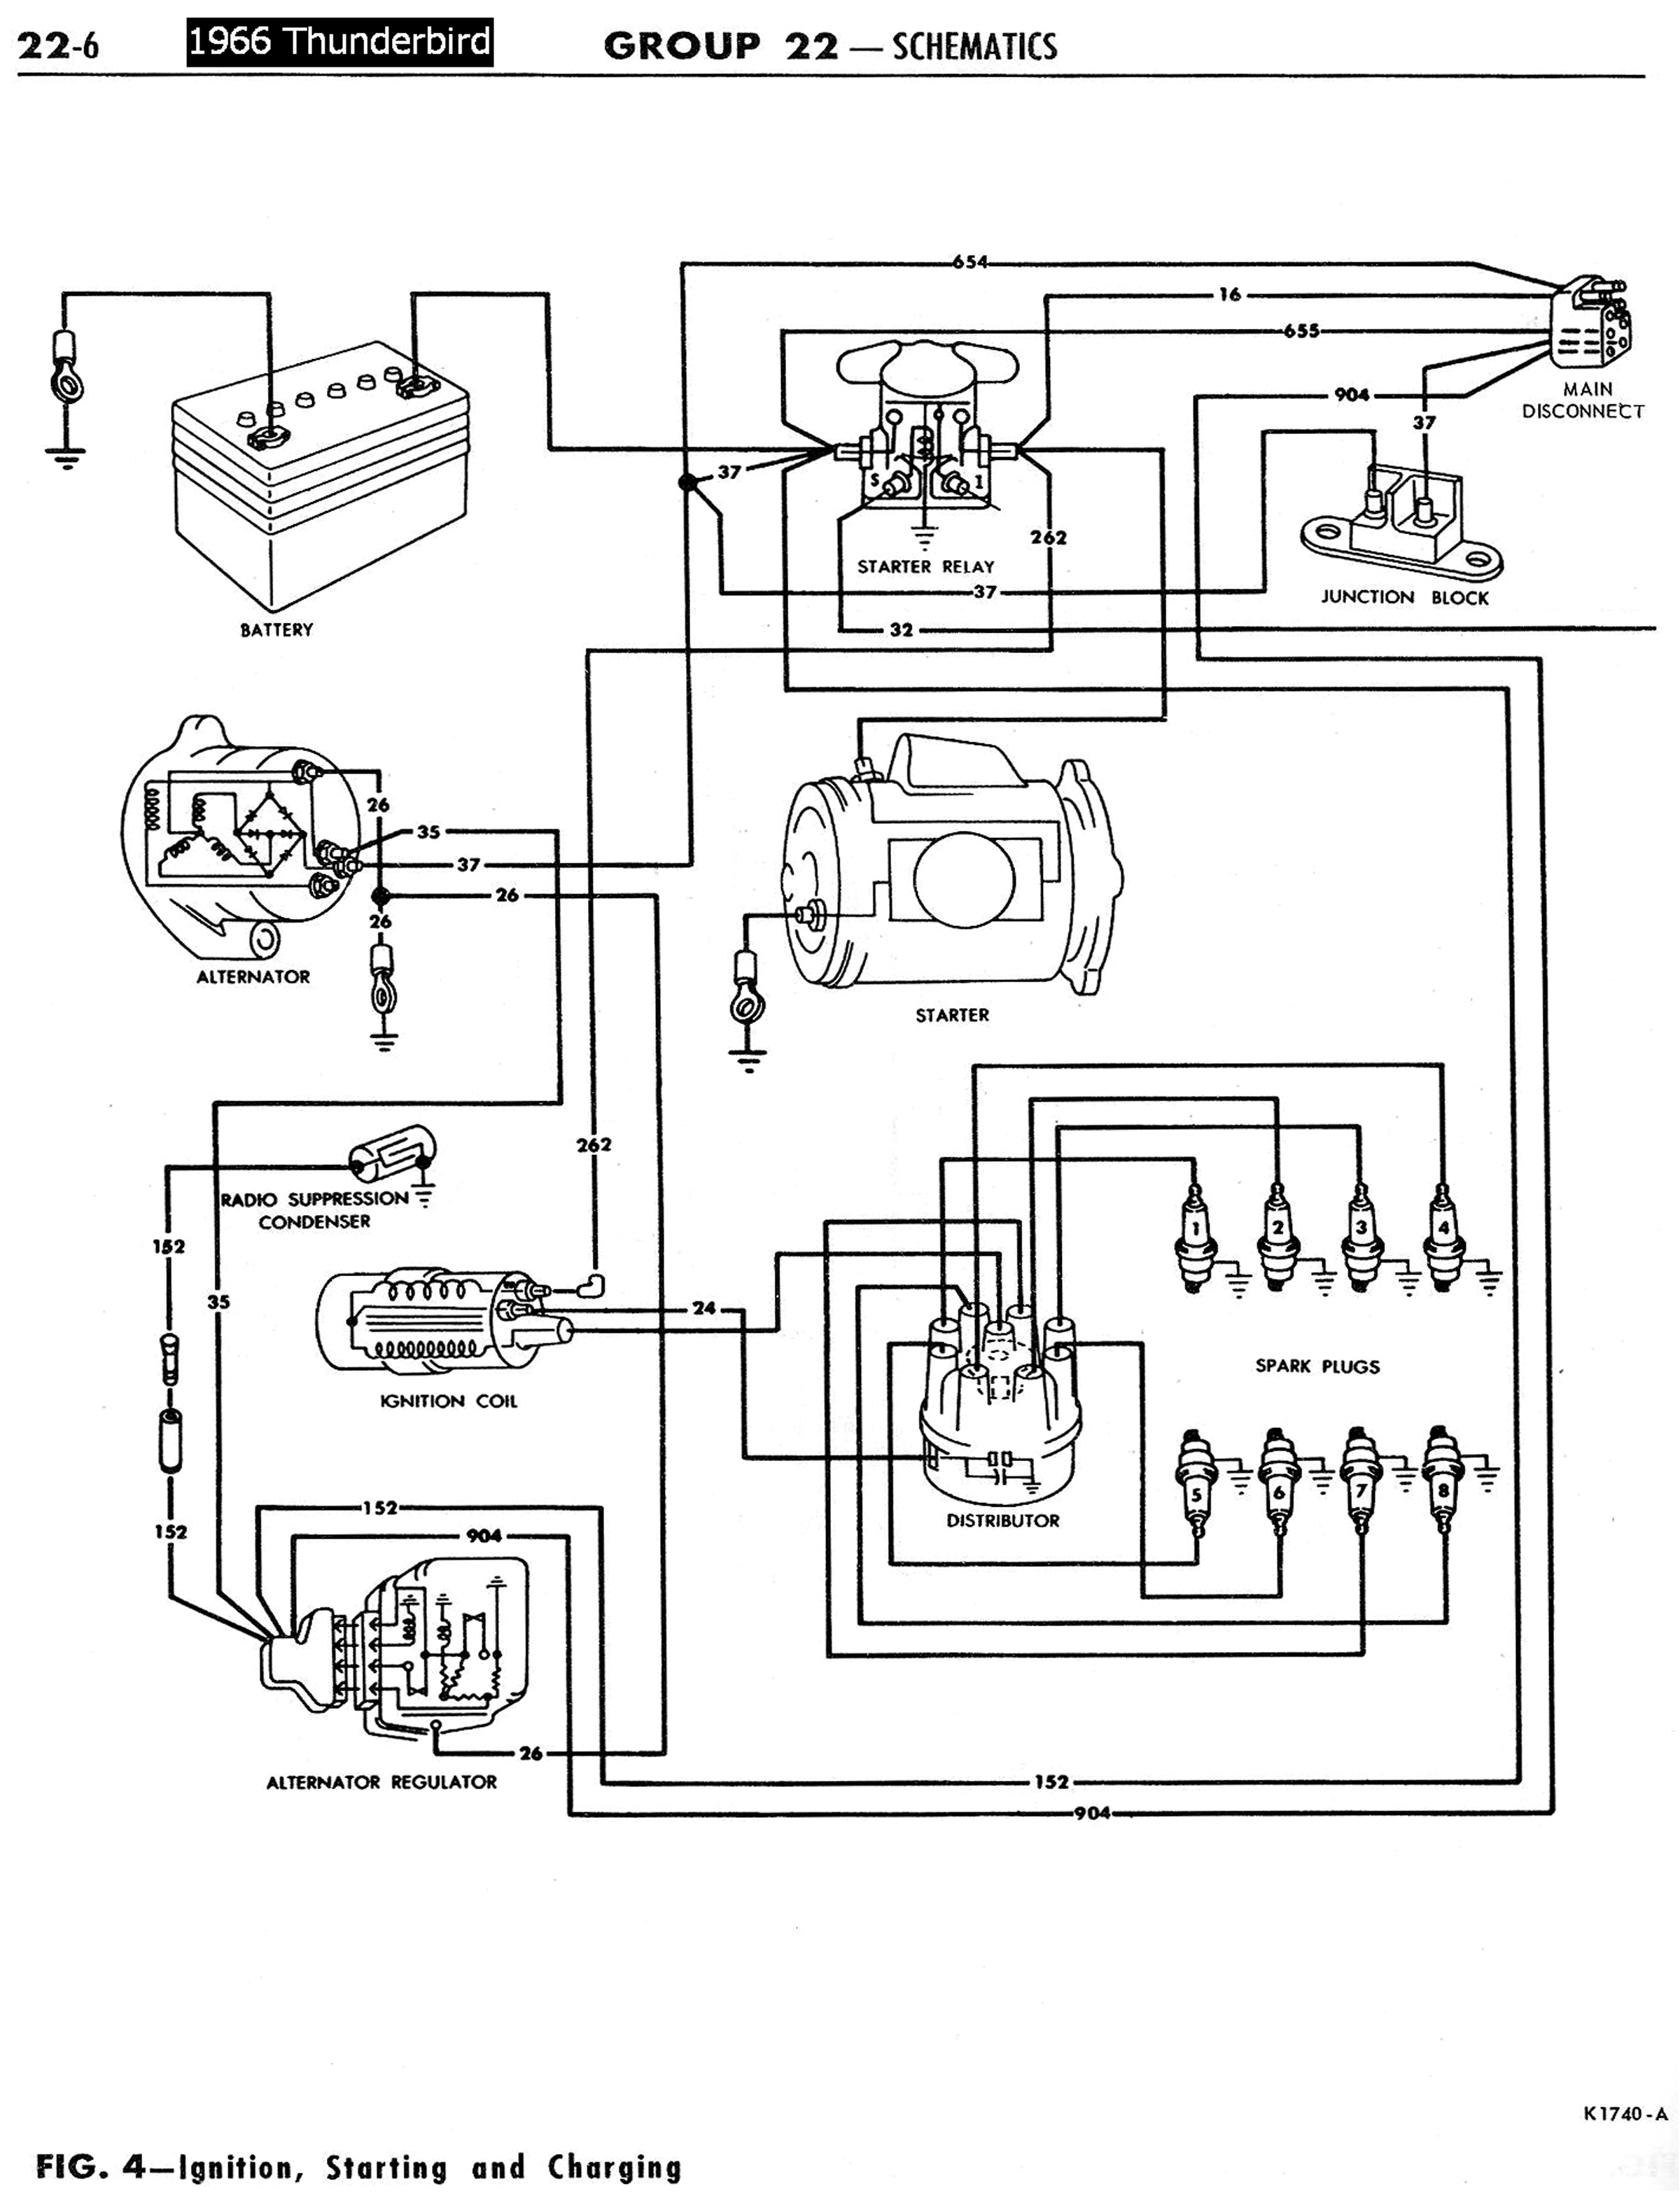 1955 Ford Thunderbird | Wiring Diagram Database